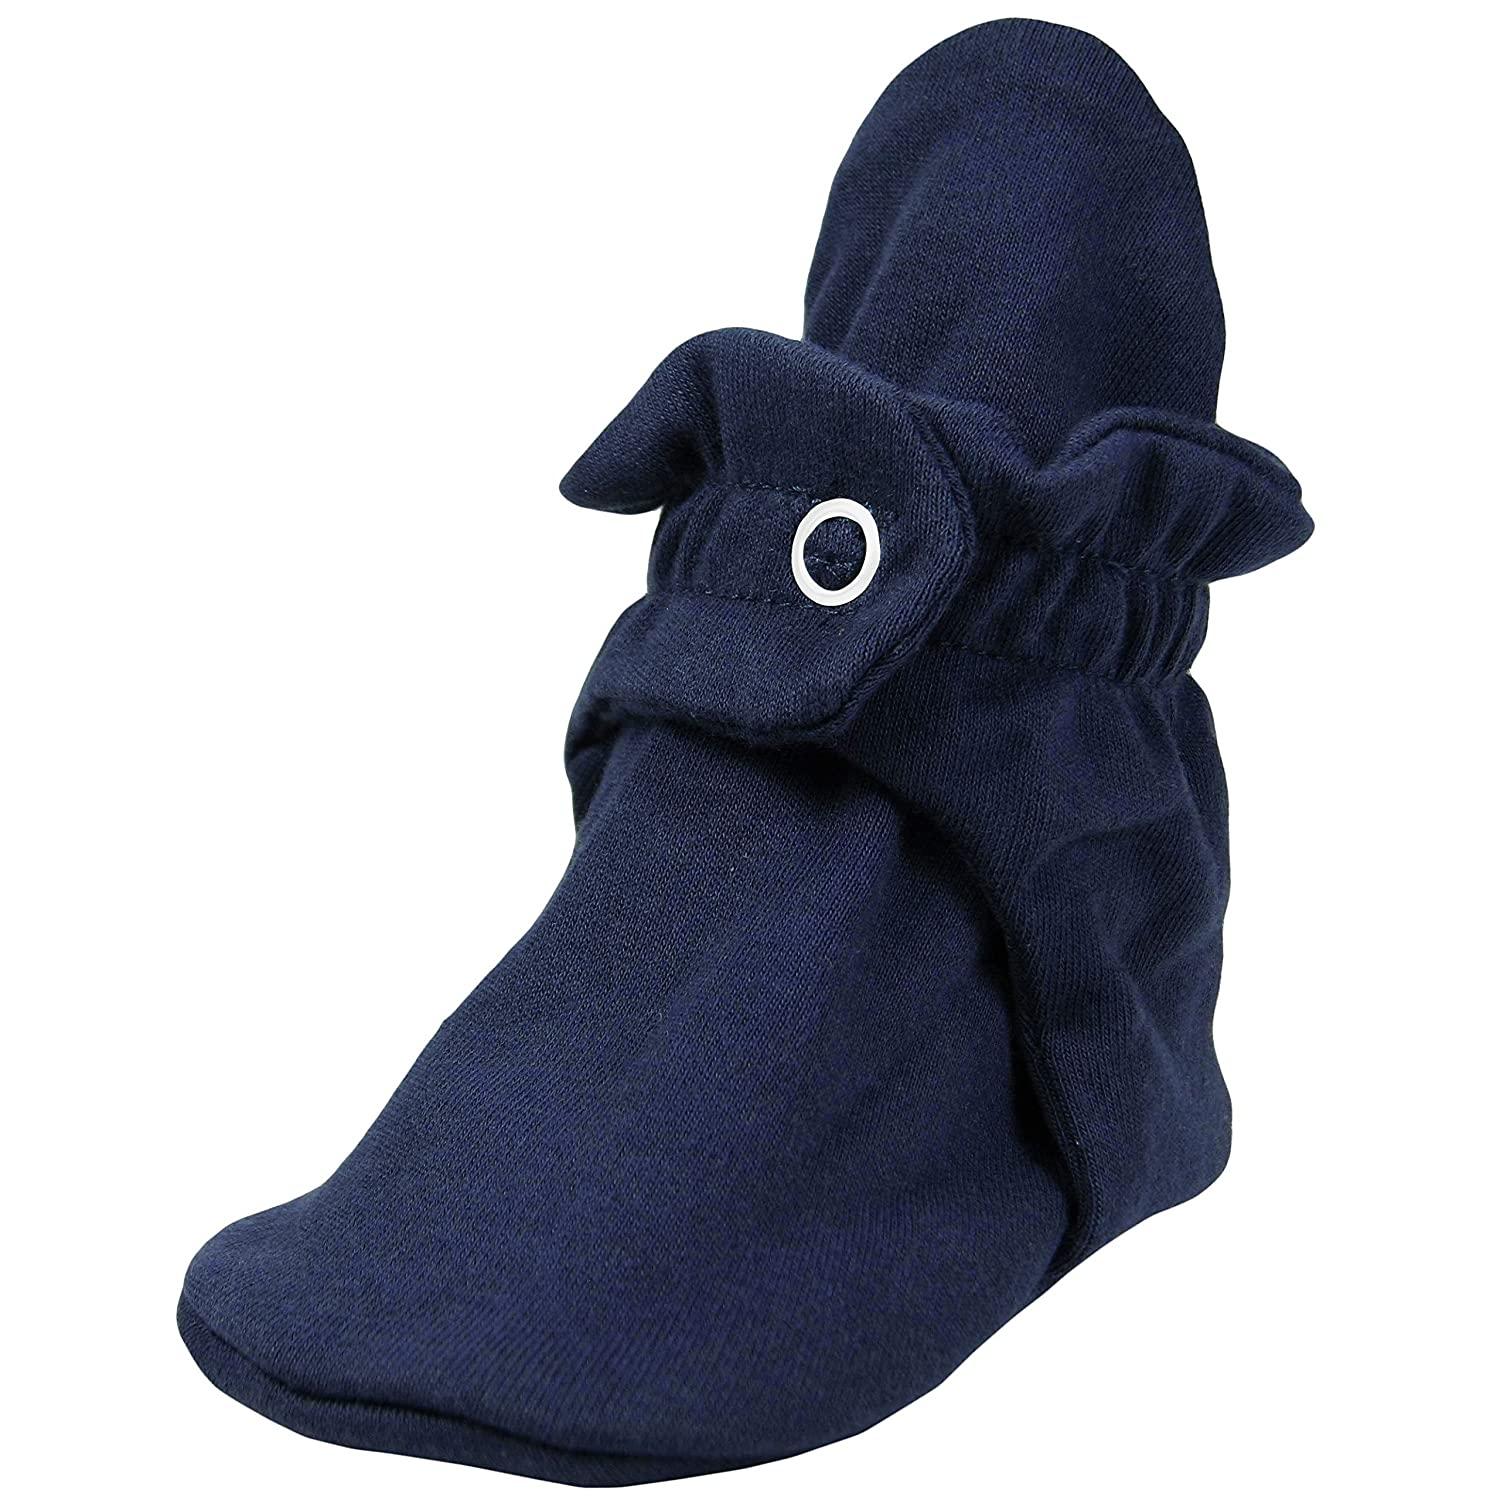 Zutano Favorite Unisex Cotton Booties Stay On Cute Shoes for Baby Boys or Girls SG_B00FO8CW54_US